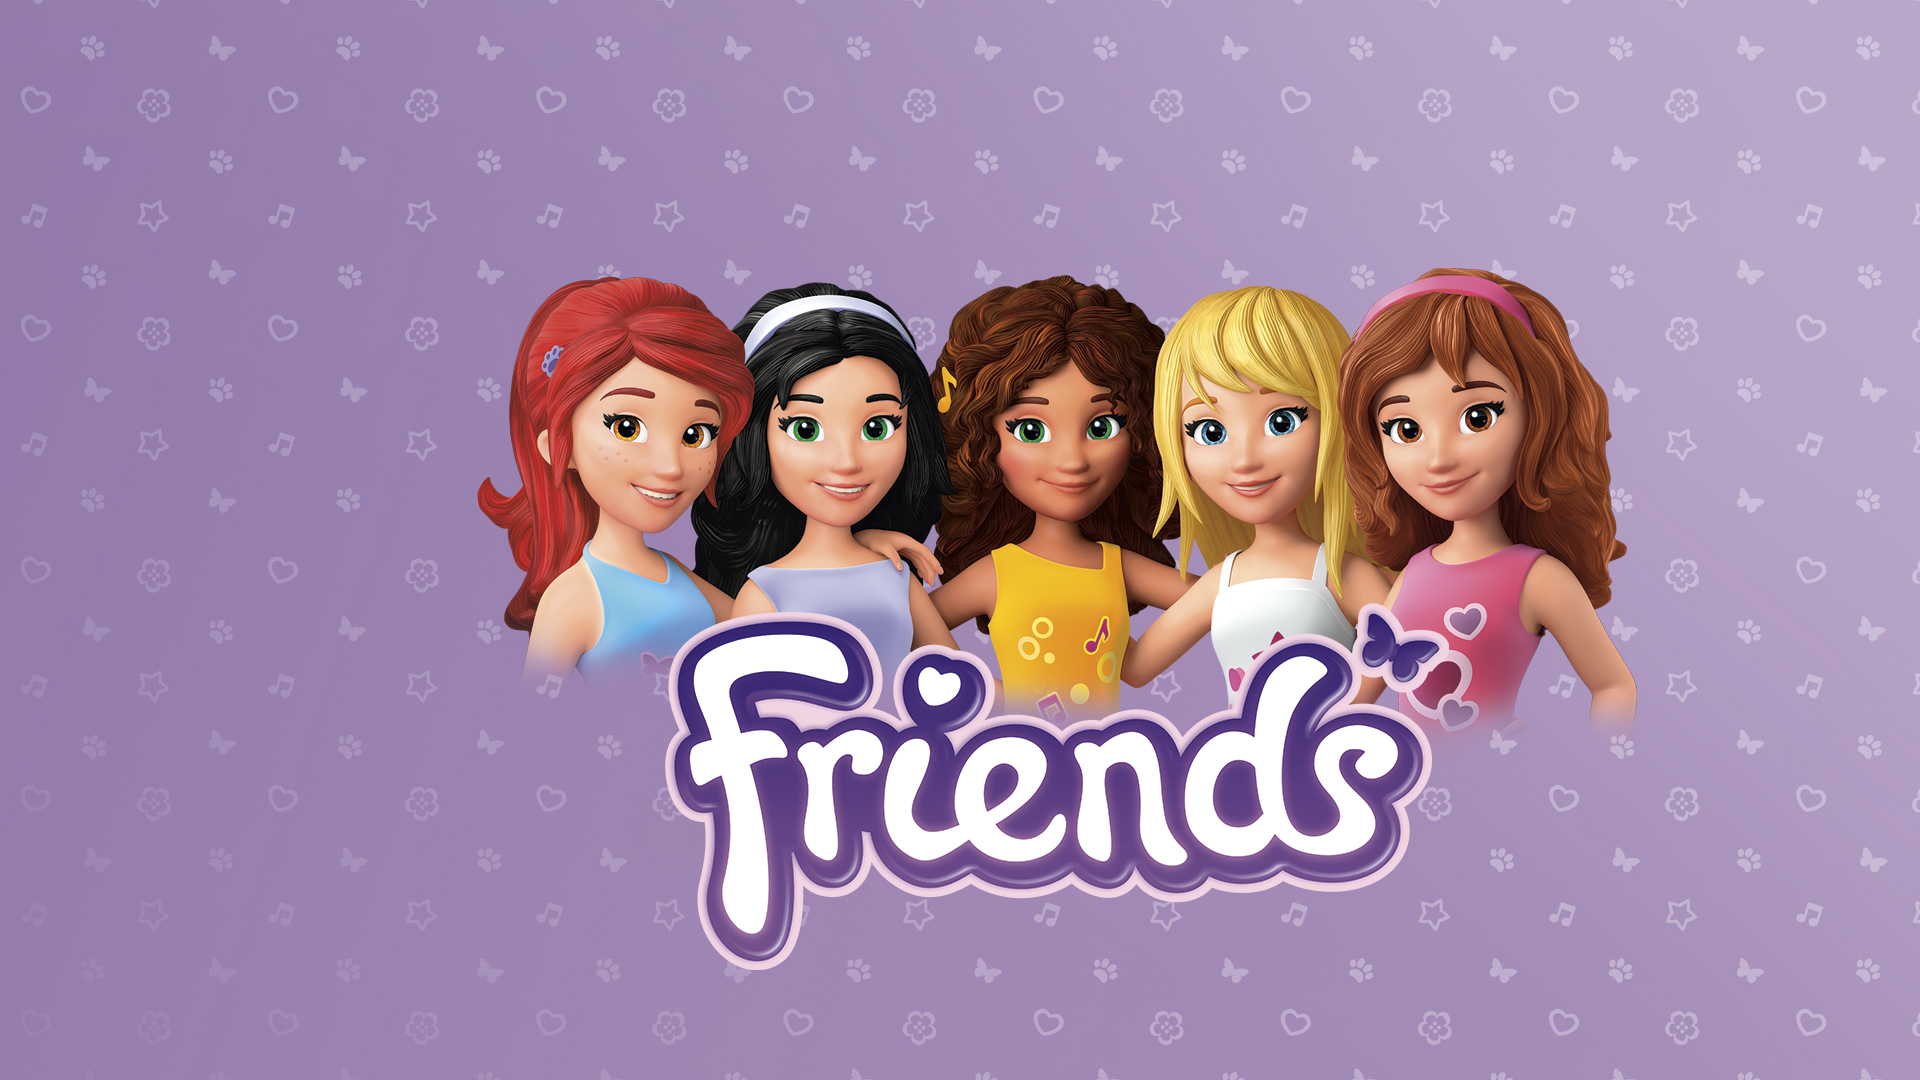 lego friends wallpaper - wallpapersafari